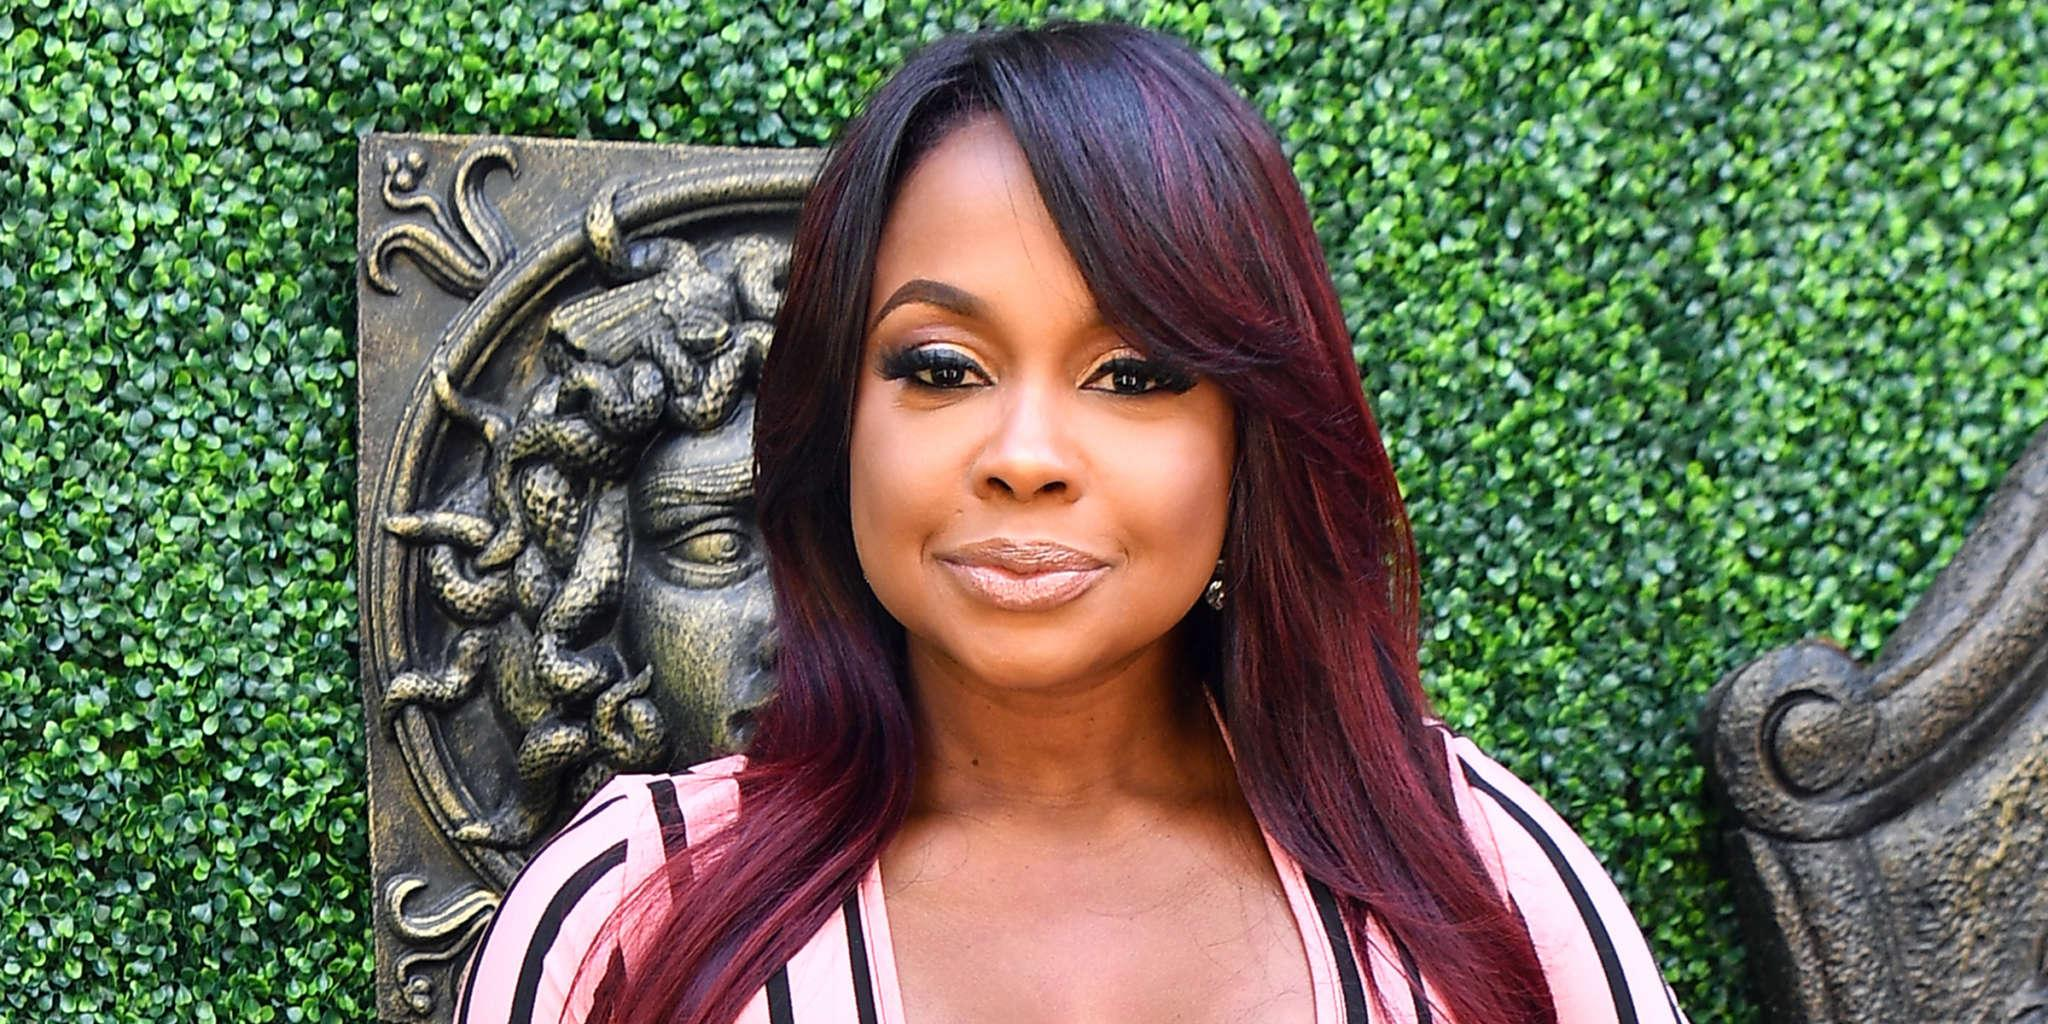 Phaedra Parks' Throwback Photo With Her Two Boys Makes Fans Smile